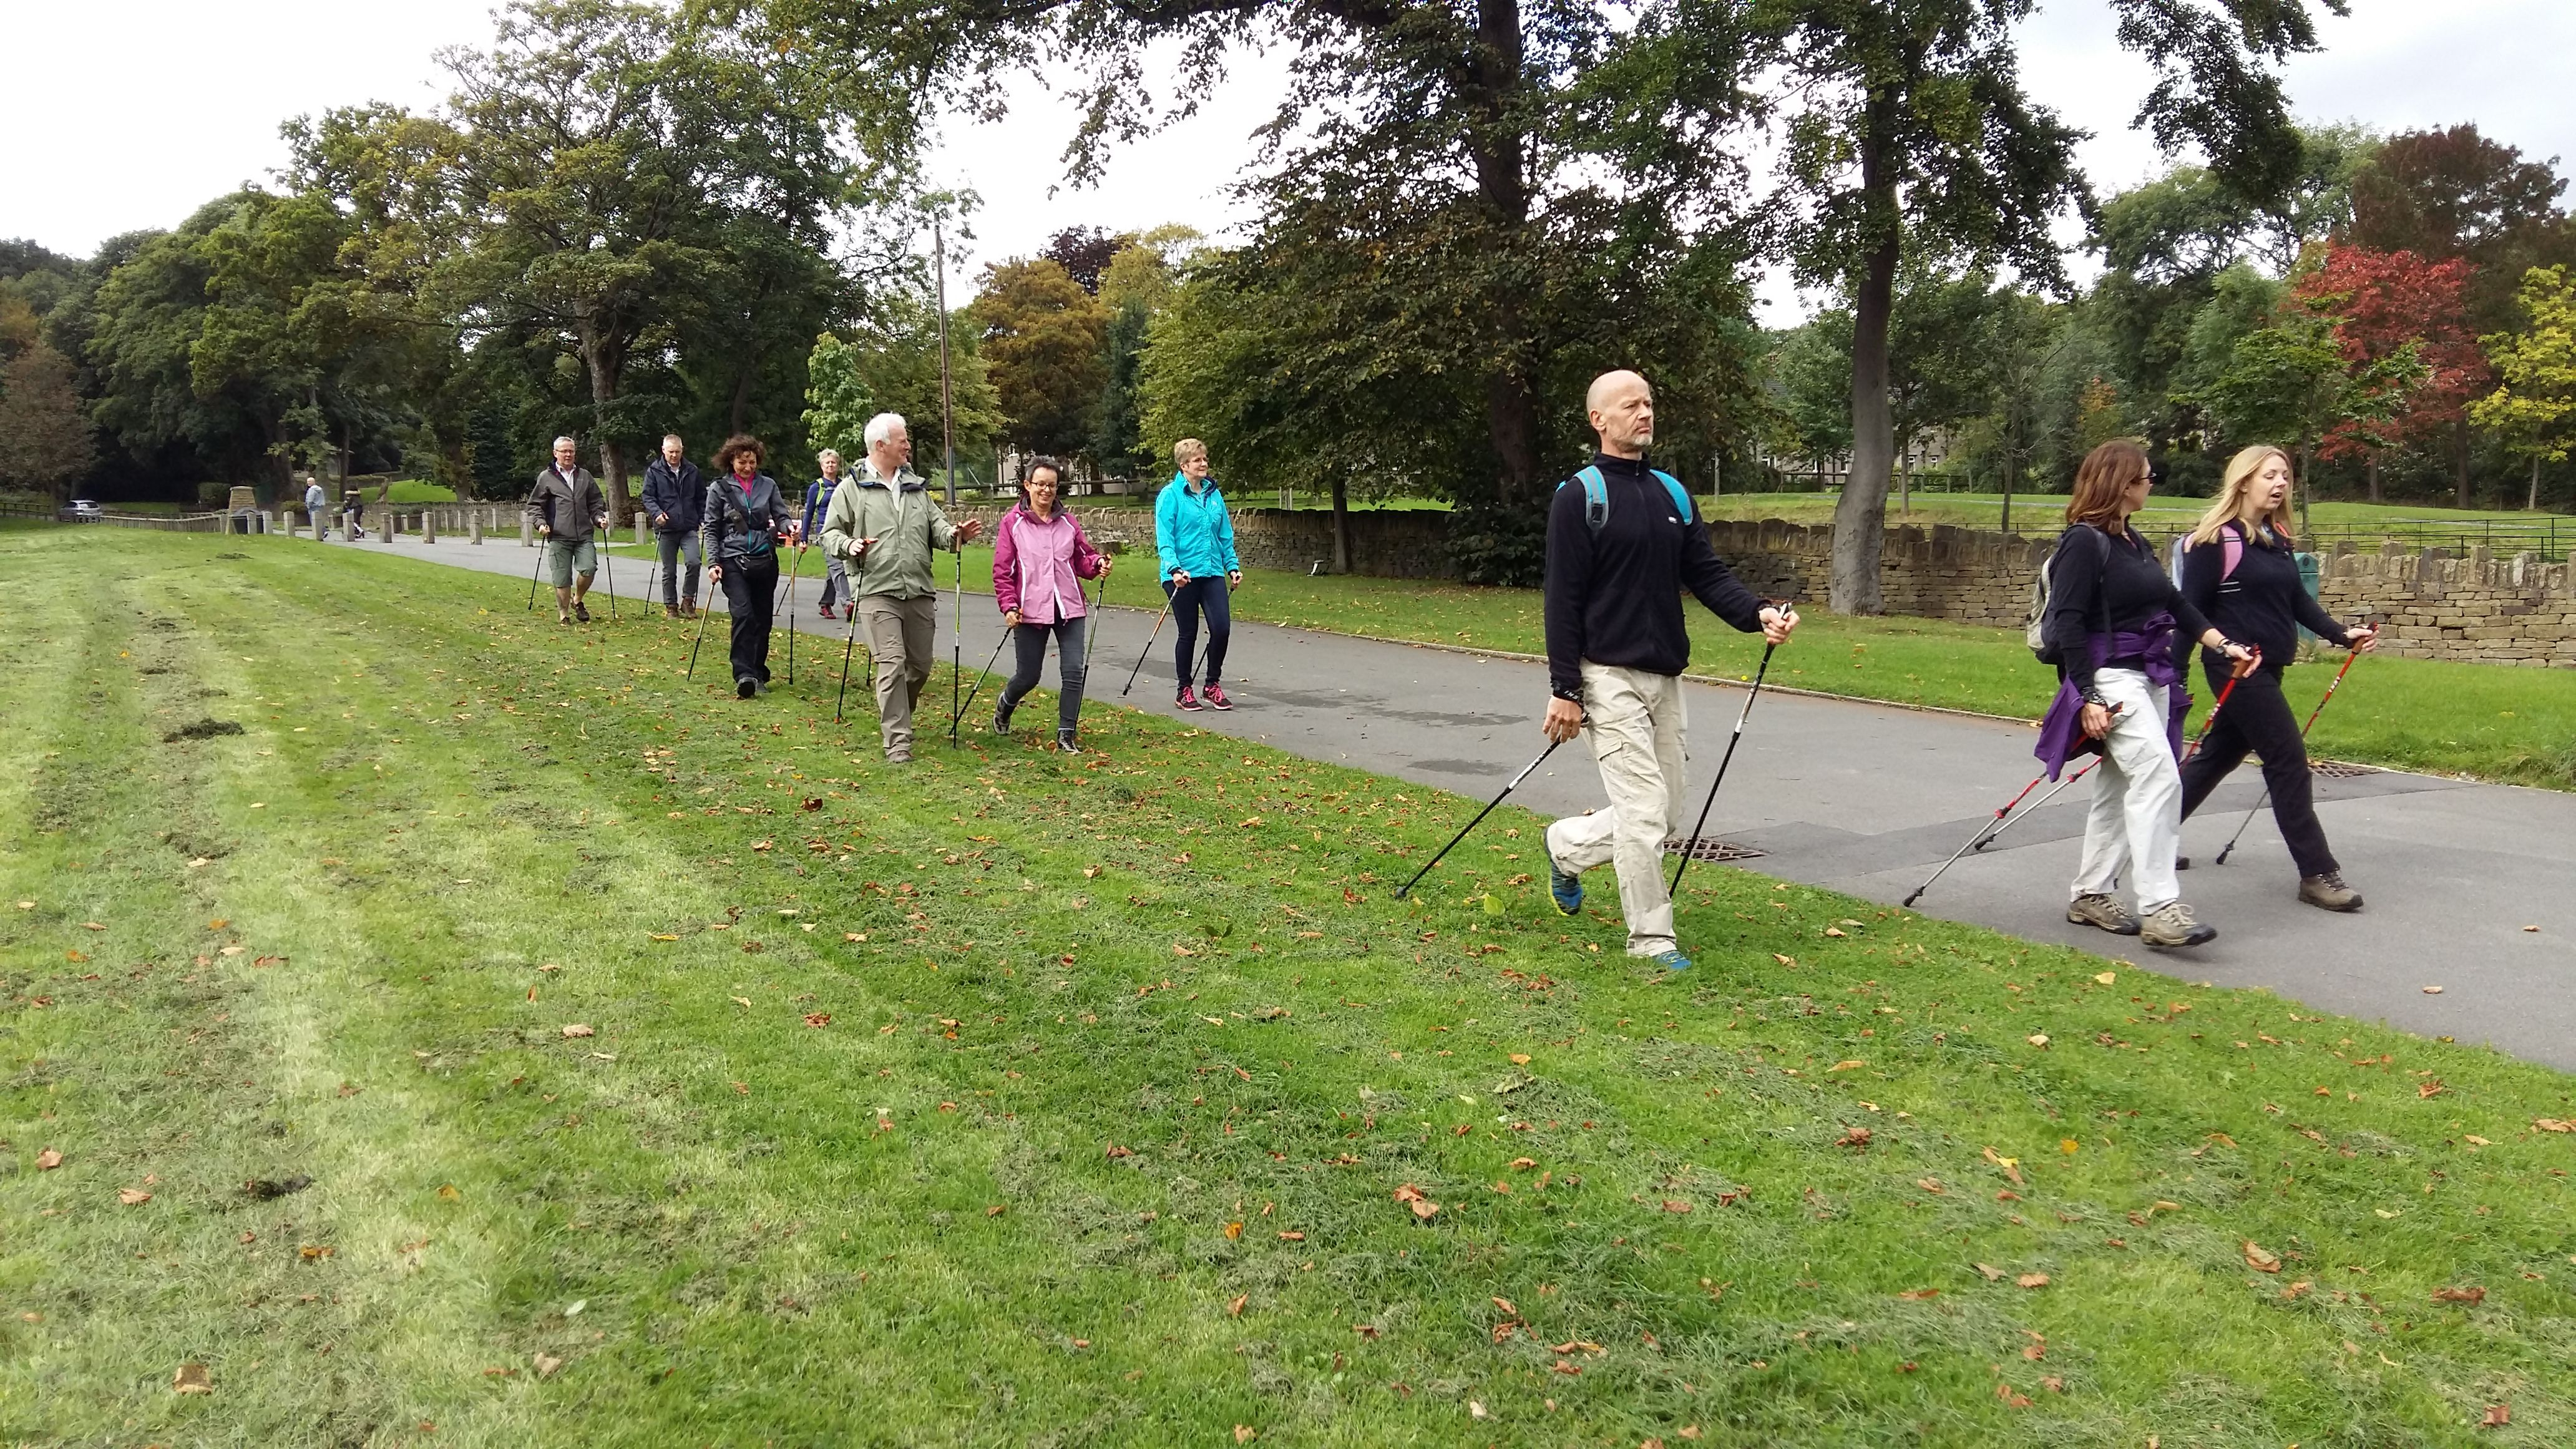 The image shows a group of Nordic Walkers in the grounds of Shibden Hall